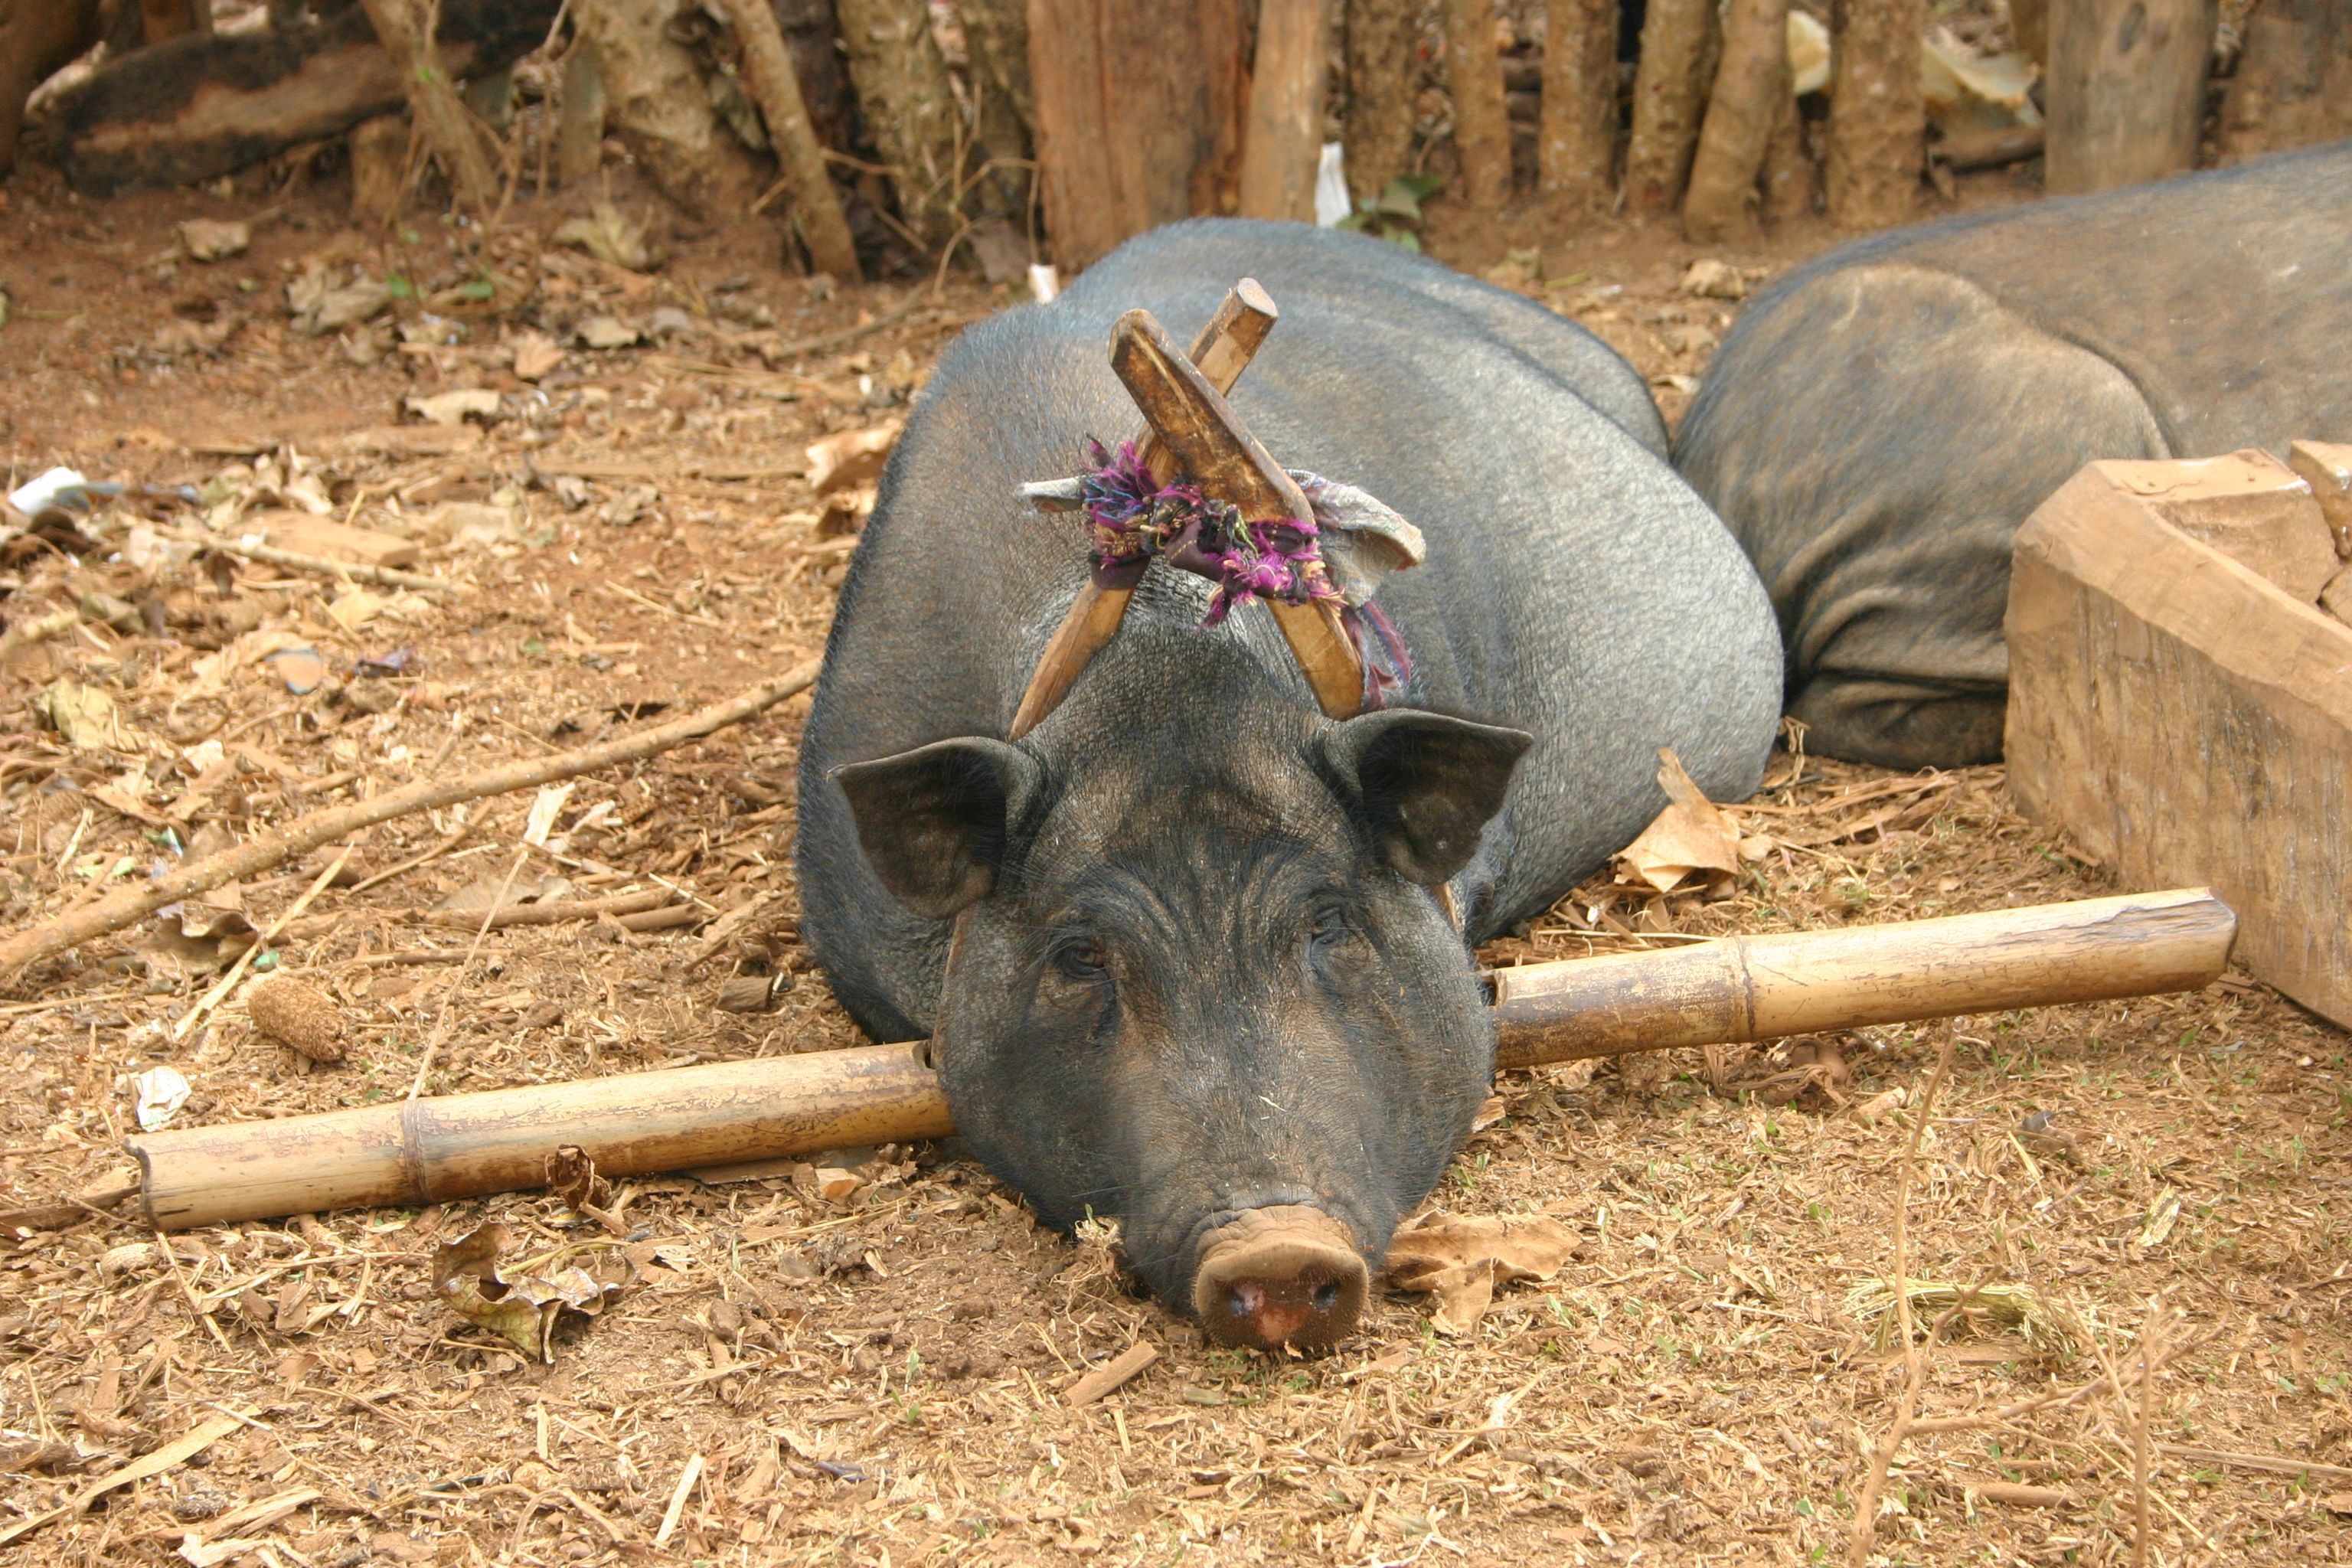 Project Sekong 2013: Do We Share Our Camp With The Pigs Or Do They Share Their Home With Us?